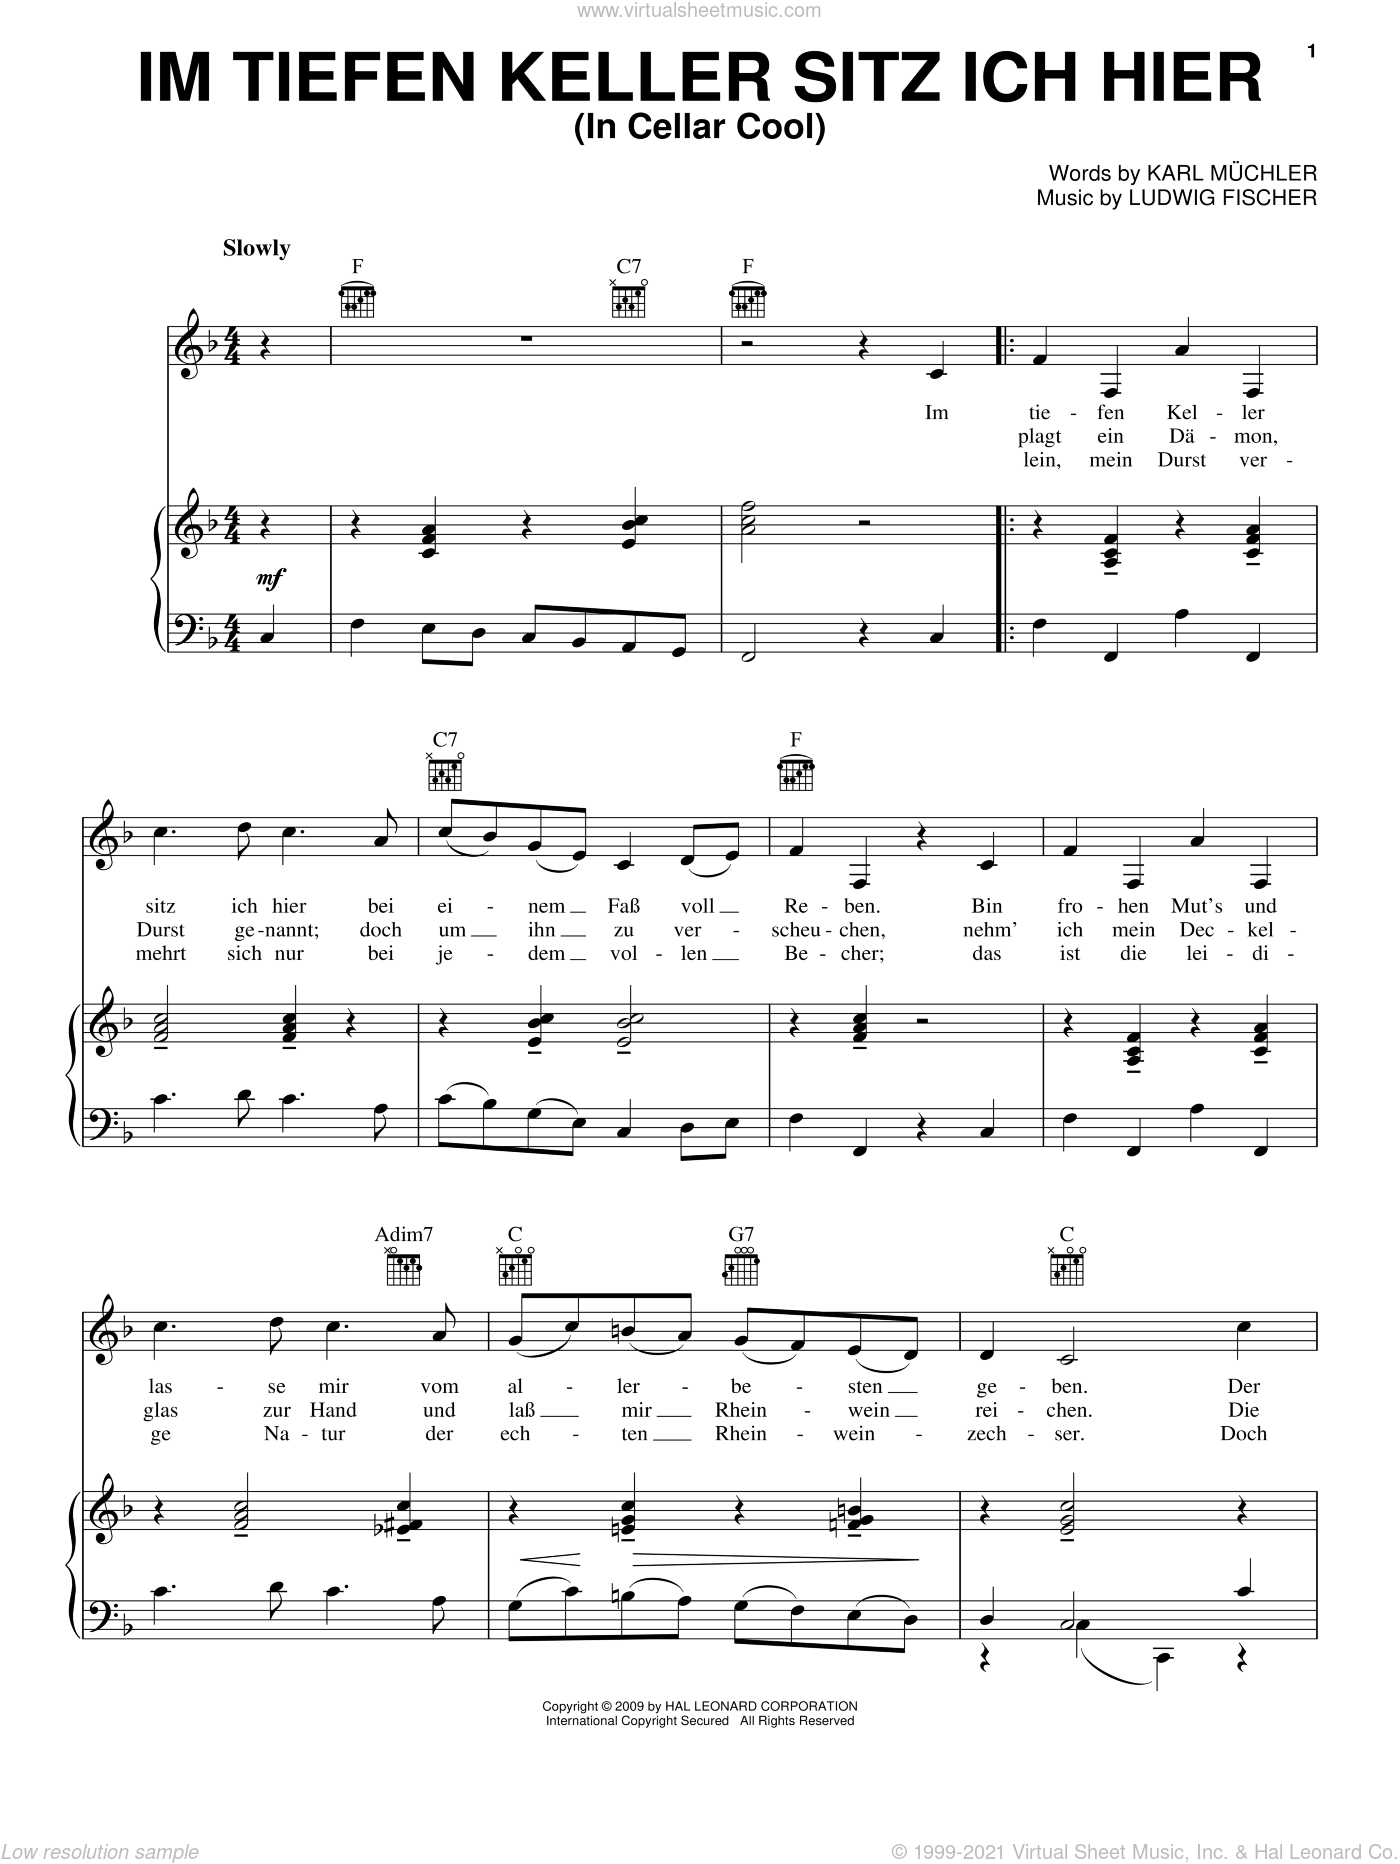 Im Tiefen Keller Sitz Ich Hier (In Cellar Cool) sheet music for voice, piano or guitar by Karl Muchler and Ludwig Fischer, intermediate skill level